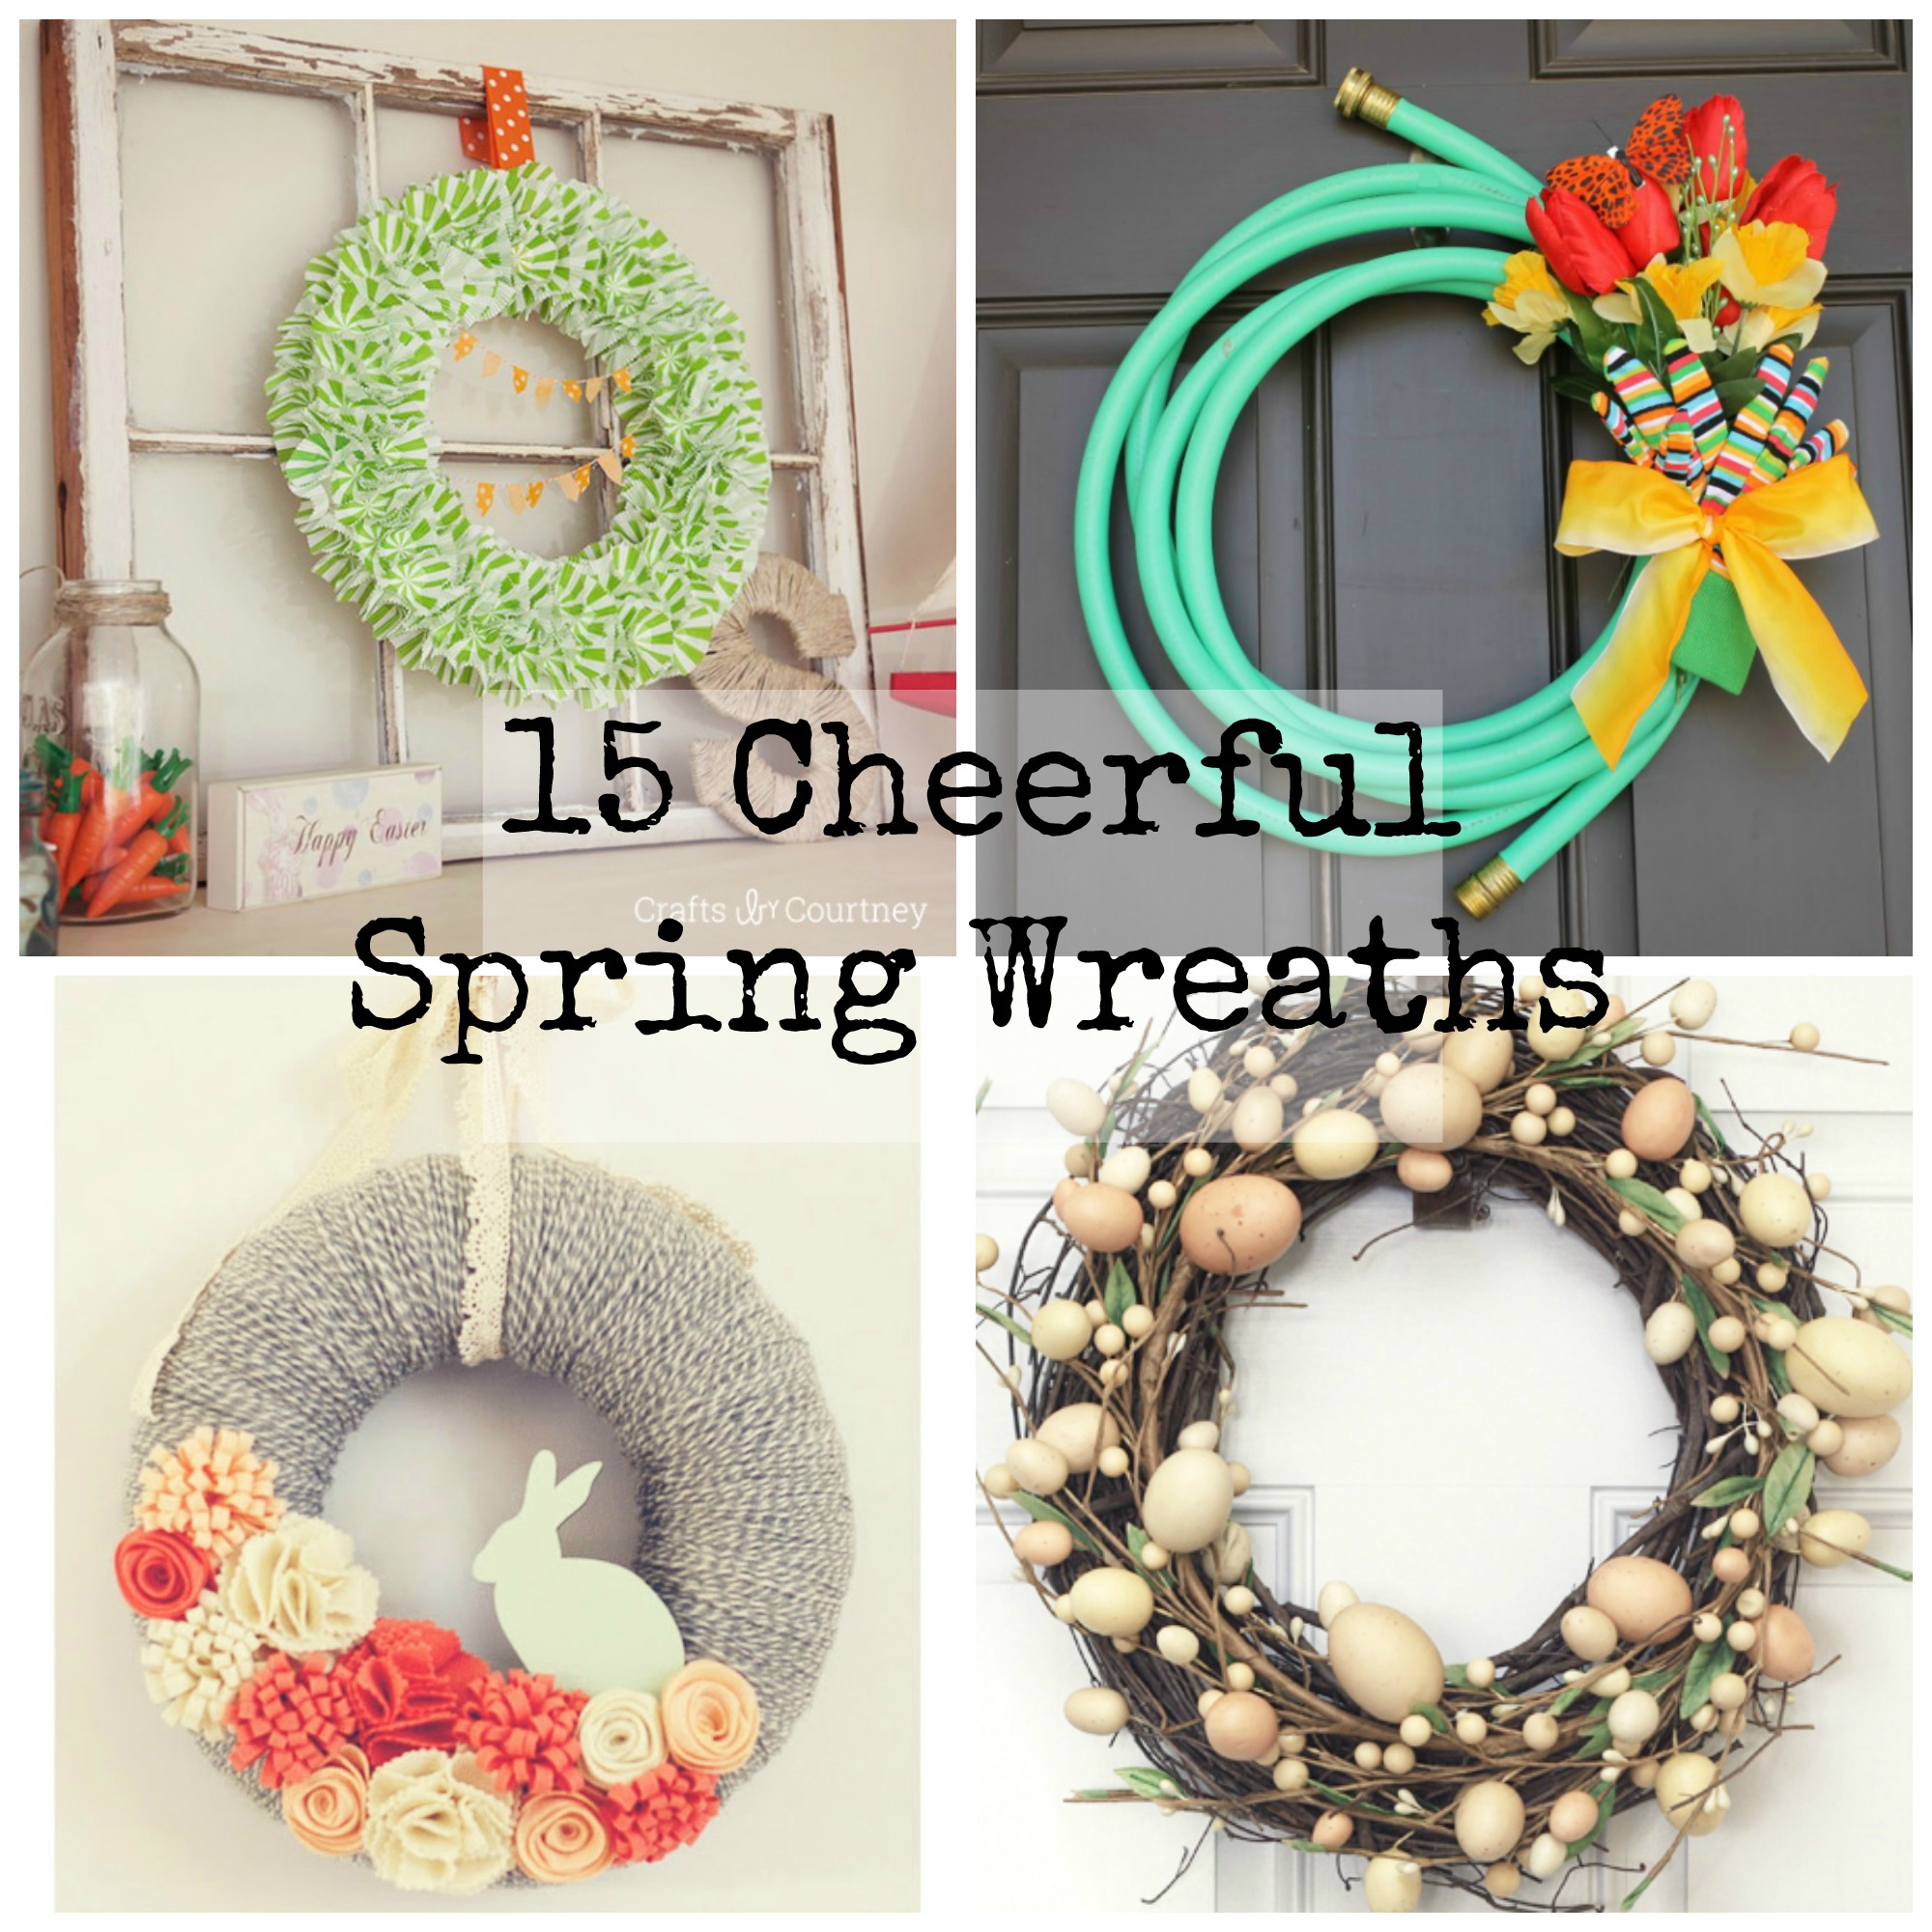 15 Cheerful Spring Wreaths